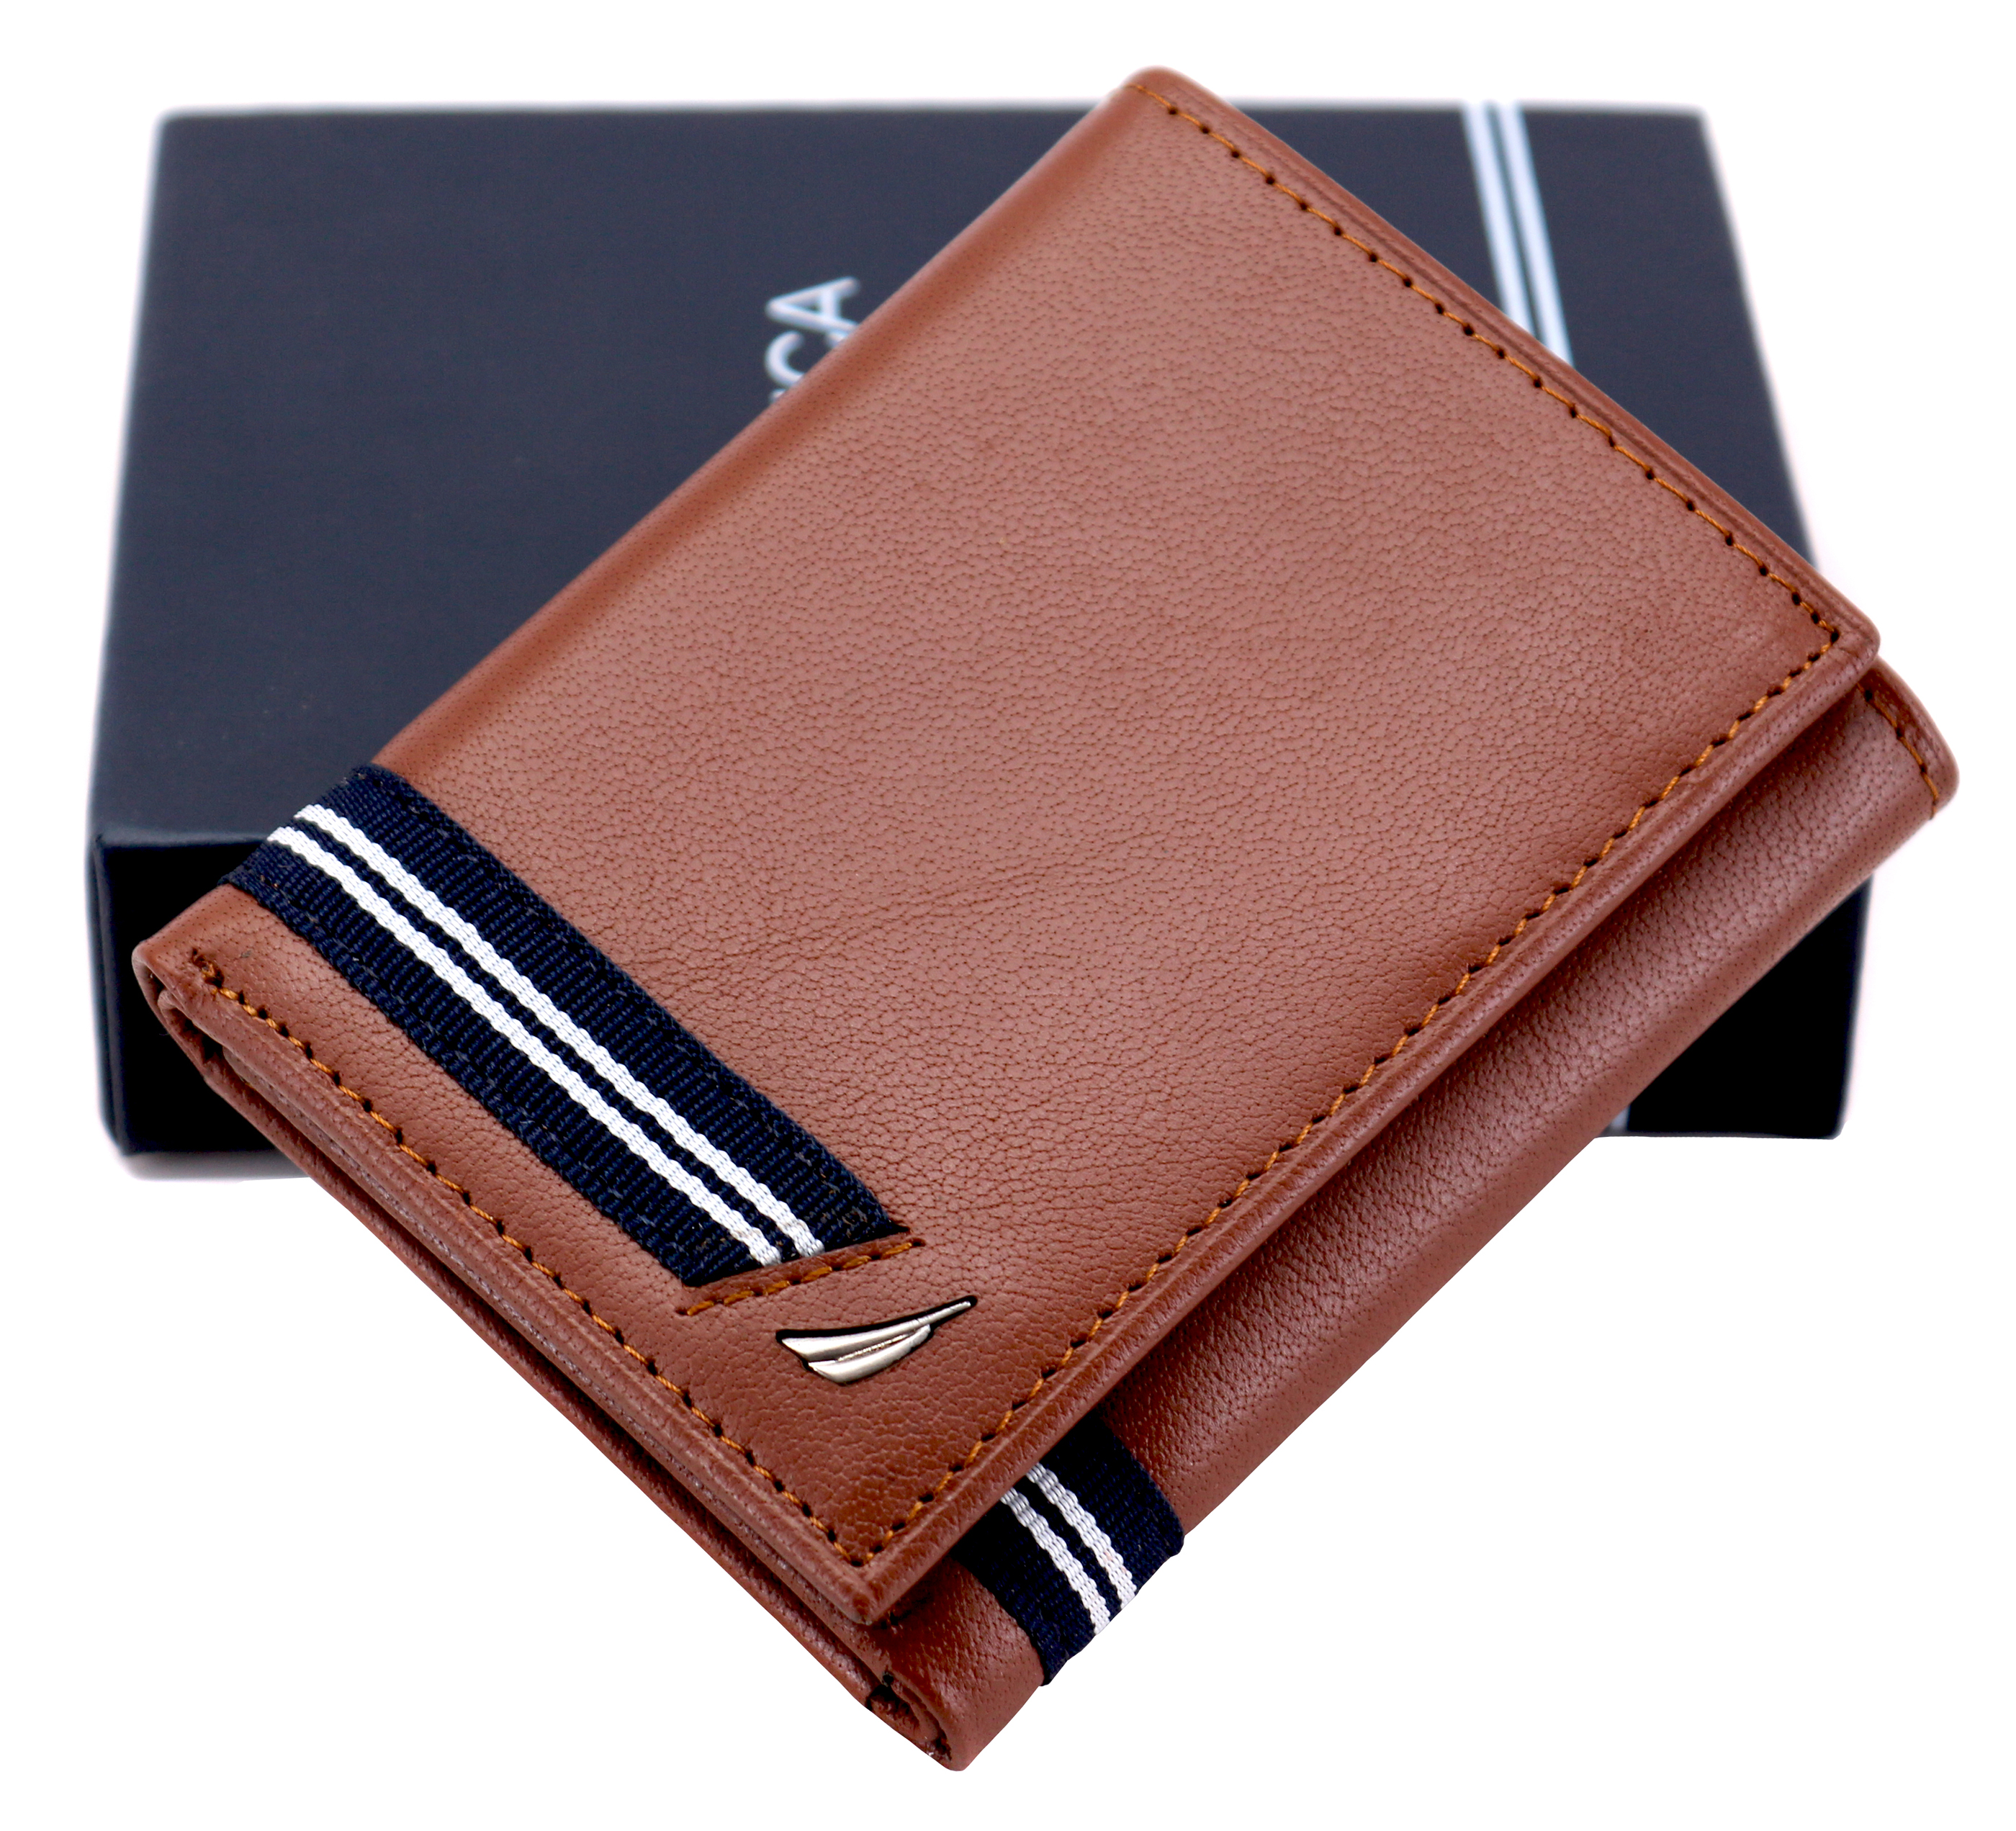 Nautica-Men-039-s-Genuine-Leather-Credit-Card-Id-Holder-Trifold-Wallet thumbnail 28